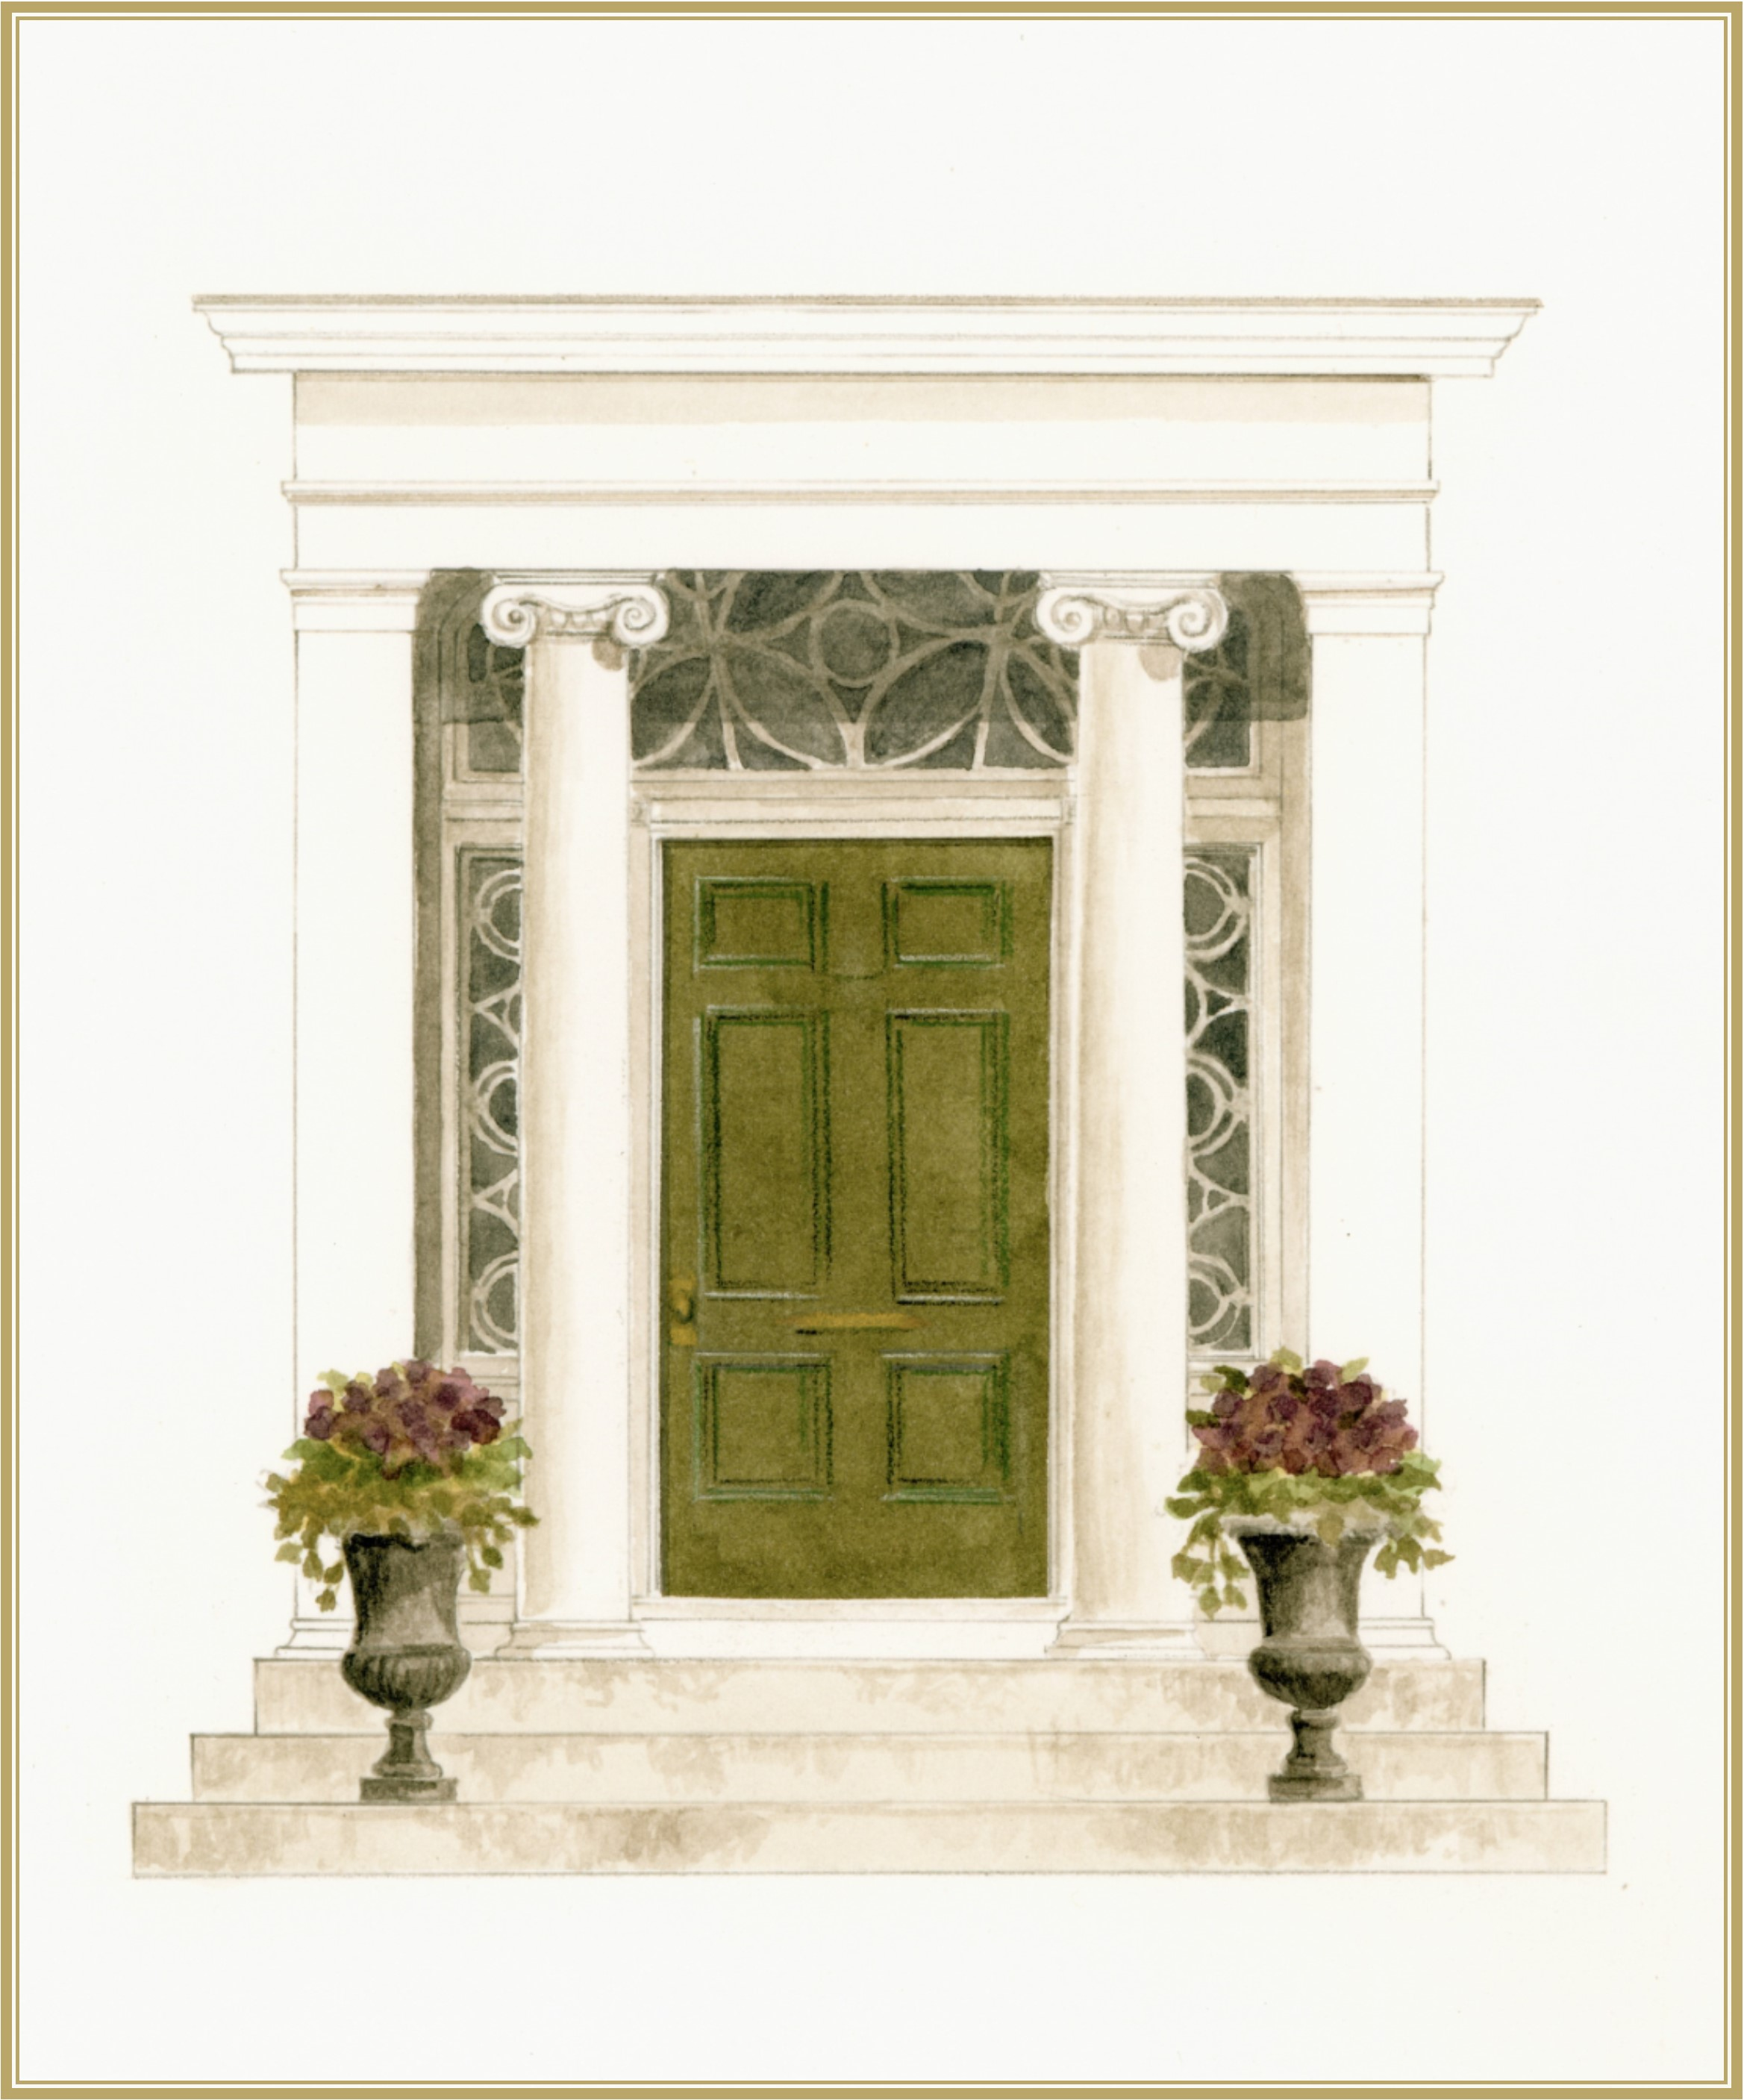 Elegant entryway of an historical Beacon Hill property, rendered in pencil and watercolor for marketing collateral